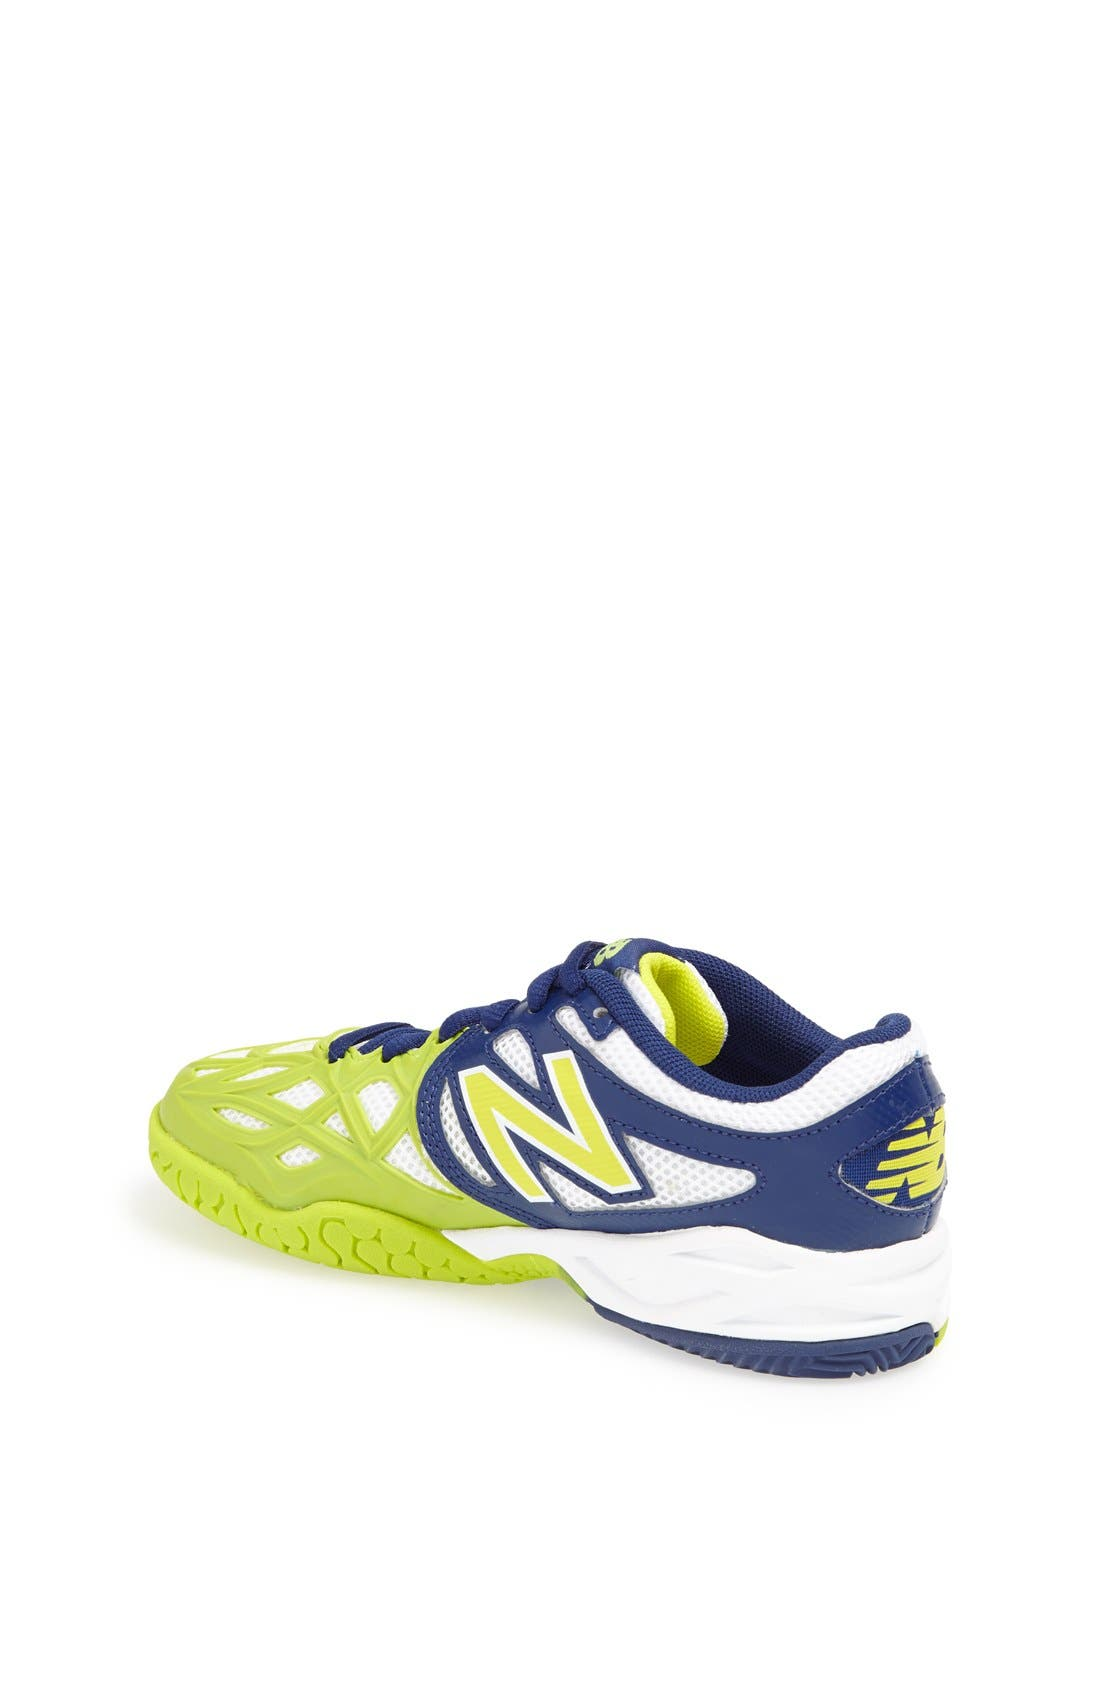 Alternate Image 2  - New Balance '996' Tennis Shoe (Toddler, Little Kid & Big Kid)